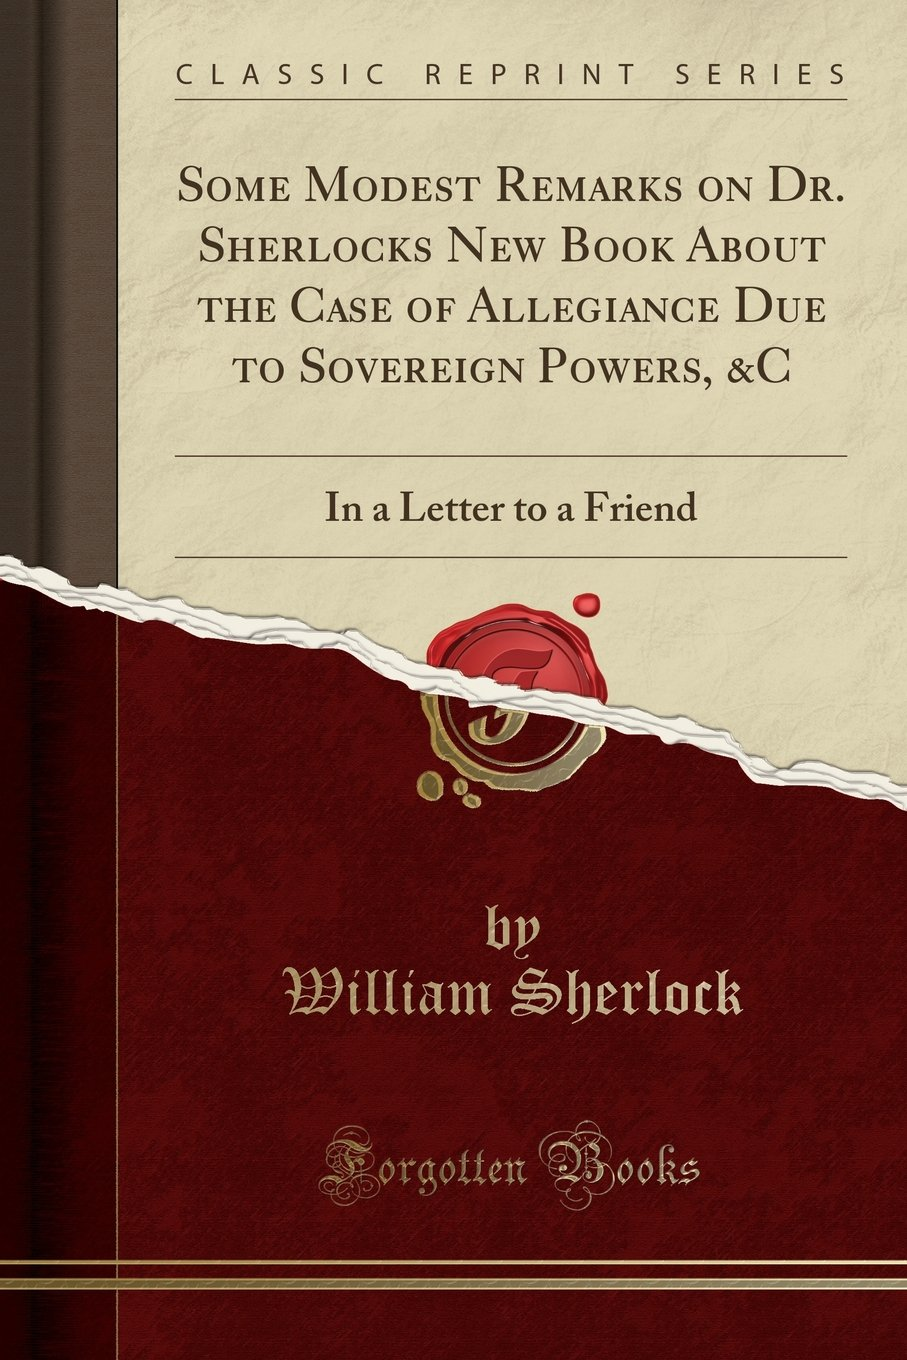 Read Online Some Modest Remarks on Dr. Sherlocks New Book About the Case of Allegiance Due to Sovereign Powers, &C: In a Letter to a Friend (Classic Reprint) Text fb2 book